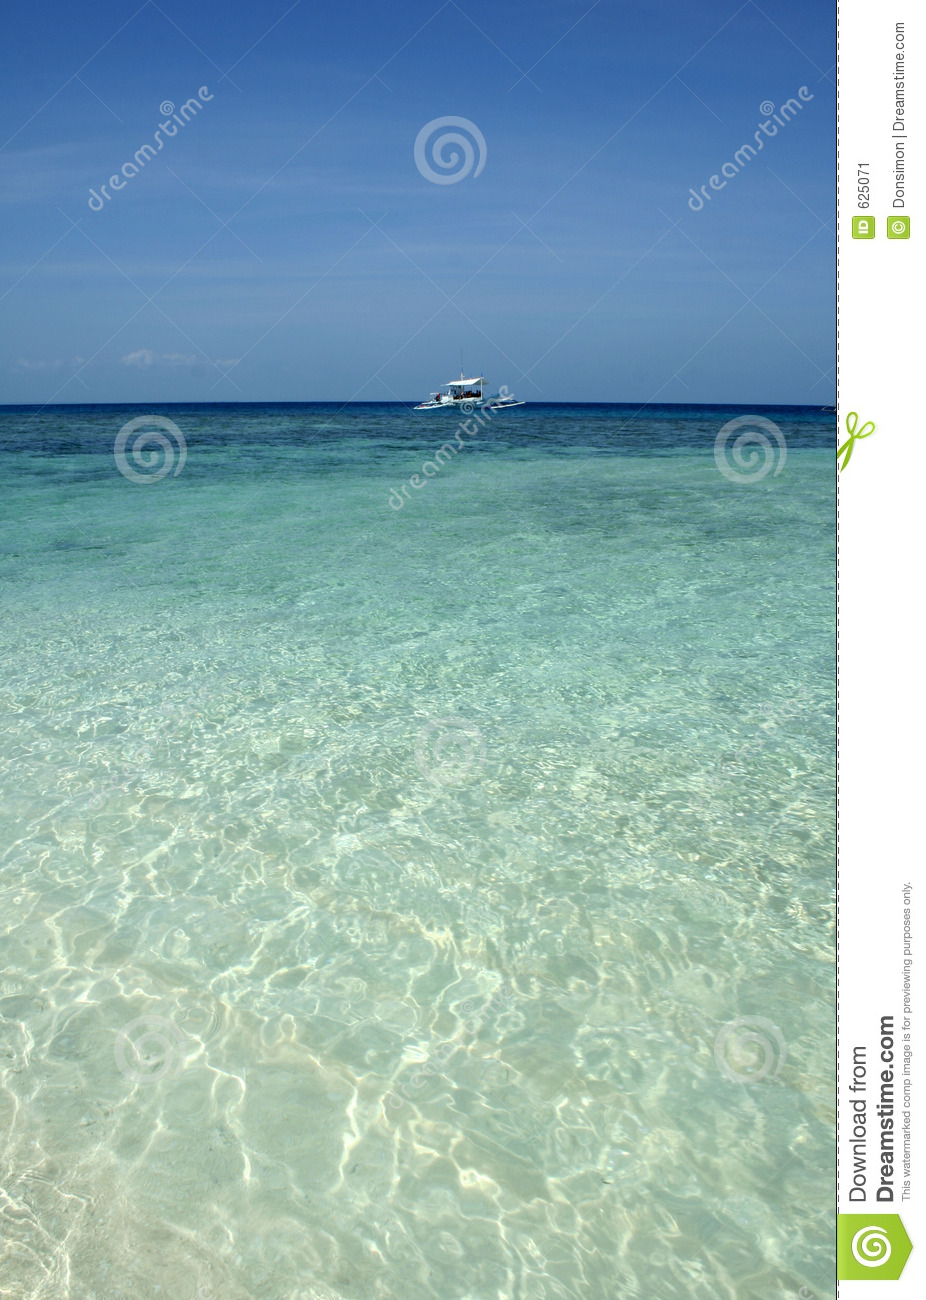 Emerald Ocean Dive Boat Sulu Sea Philippines Stock Image - Image of copy, backgrounds: 625071